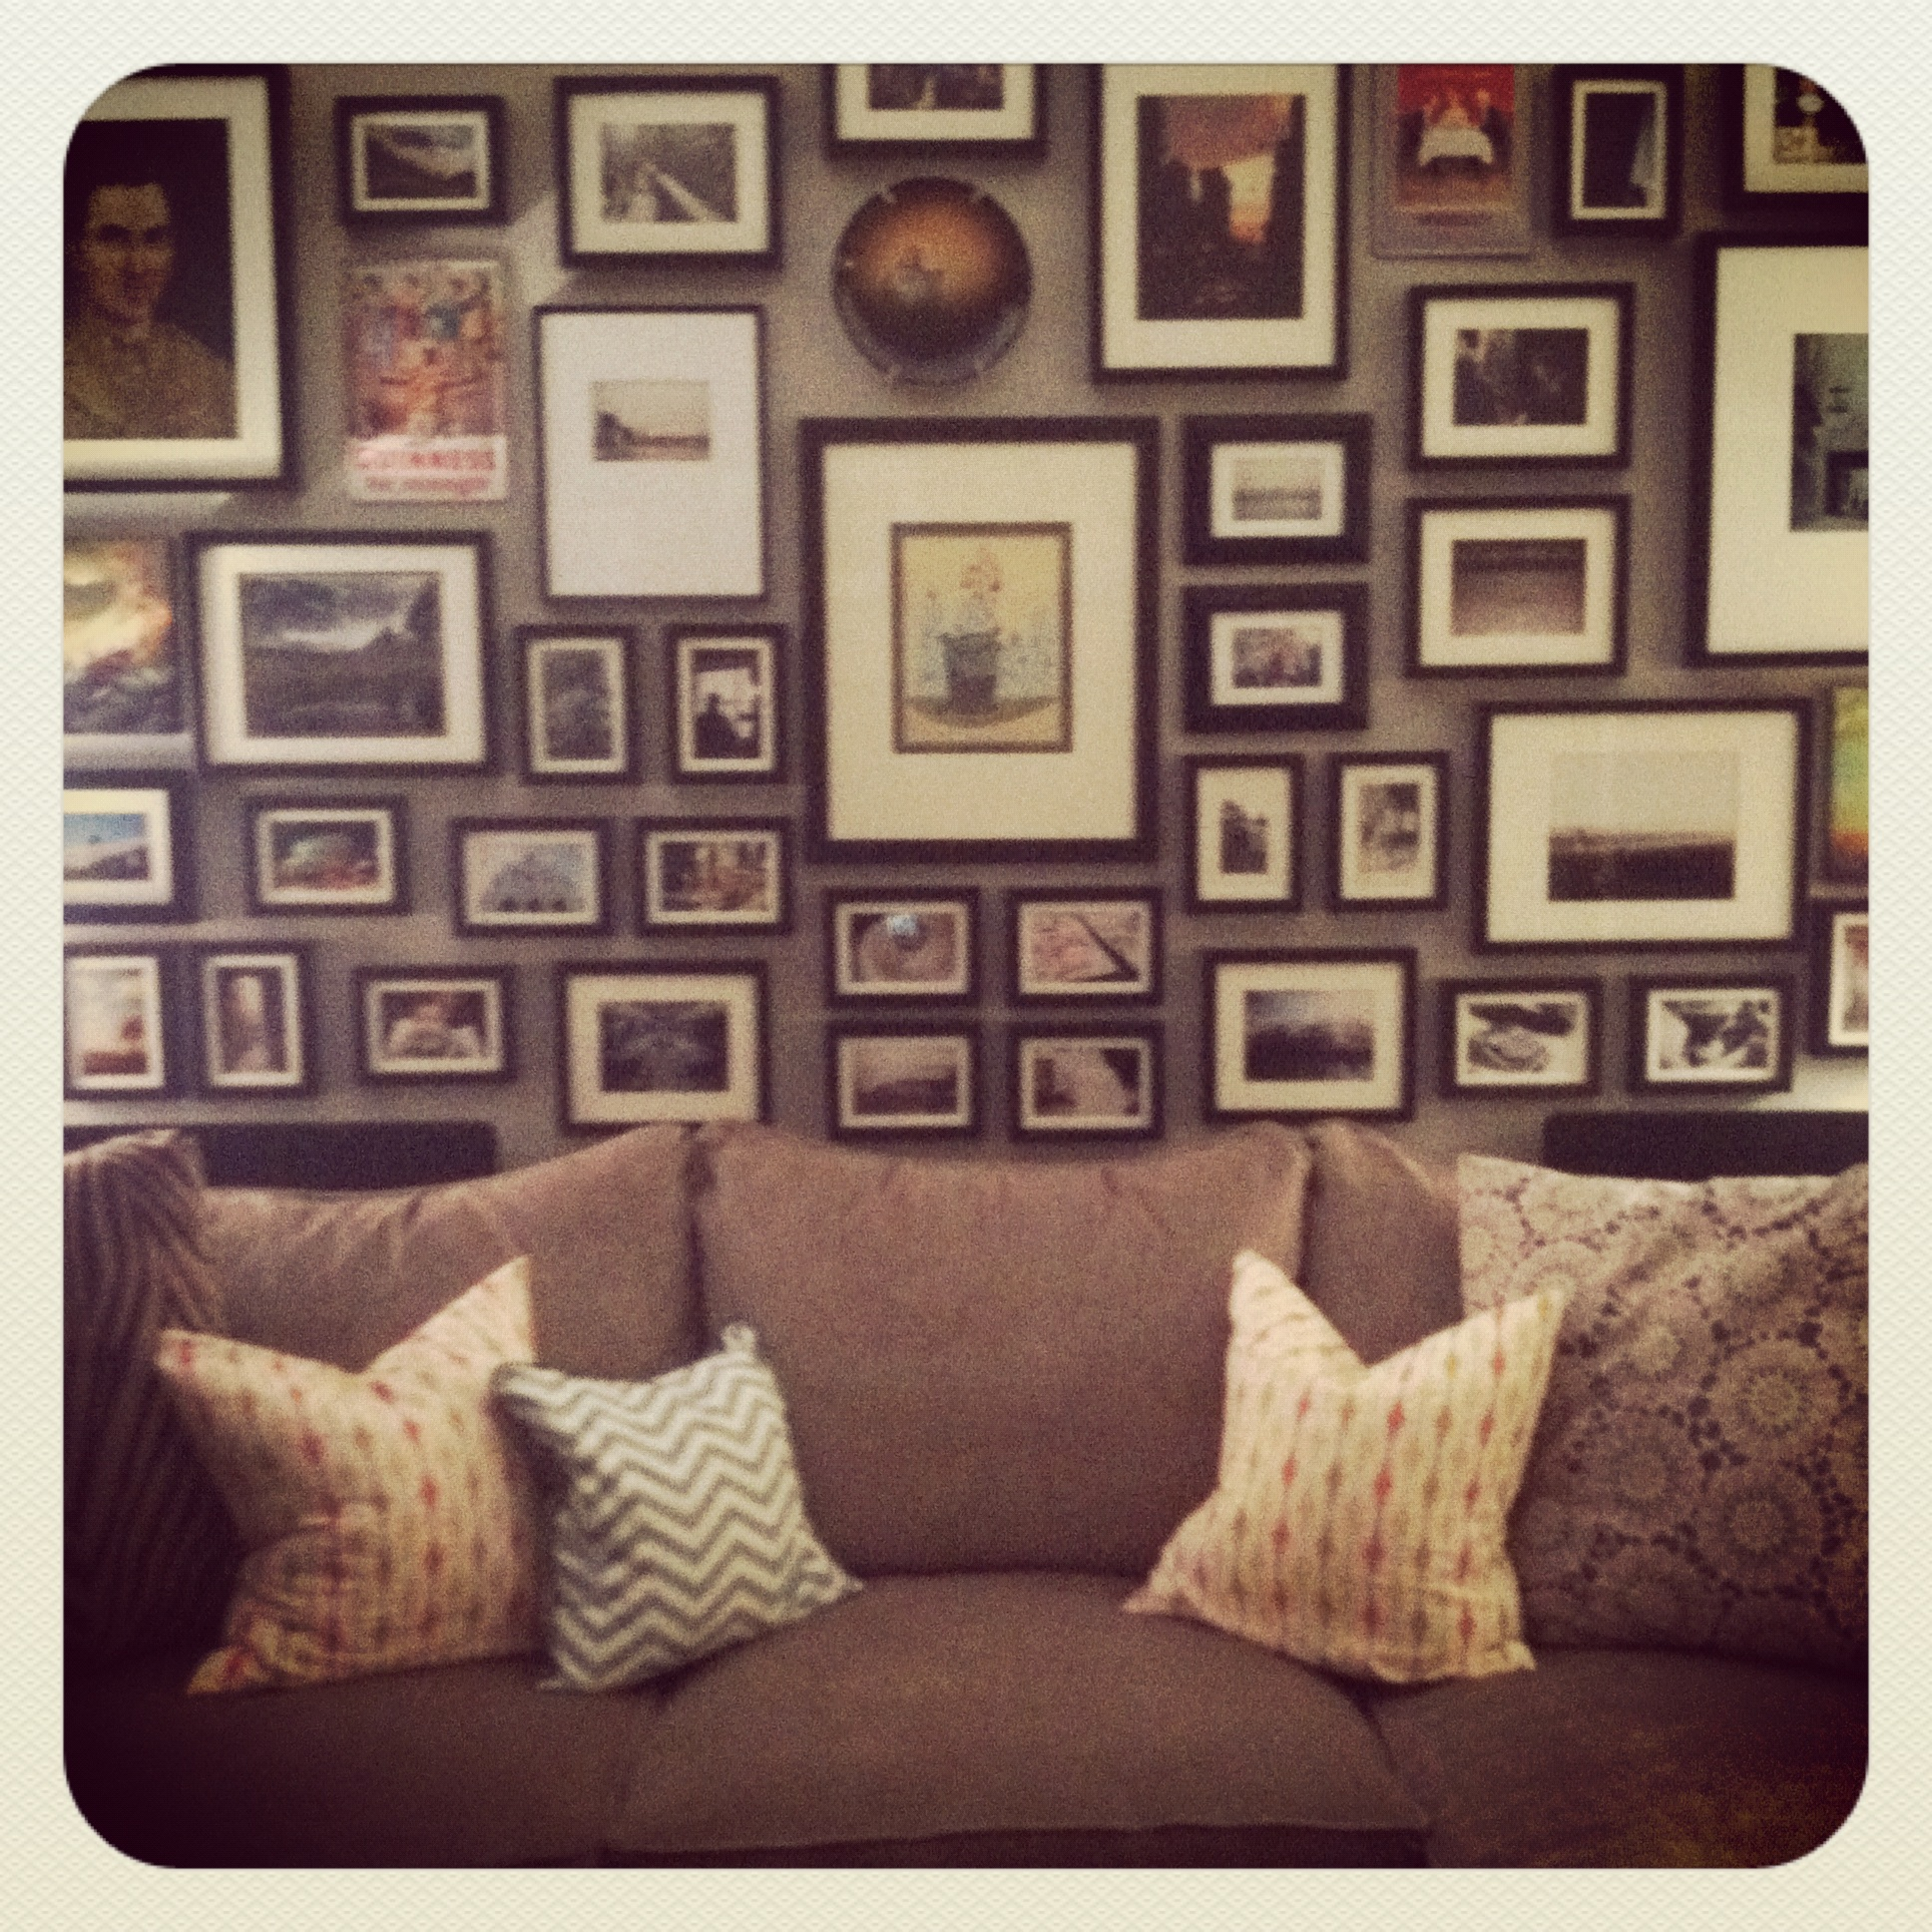 gallery wall process how to before and after makeover apartment envy living room instagram